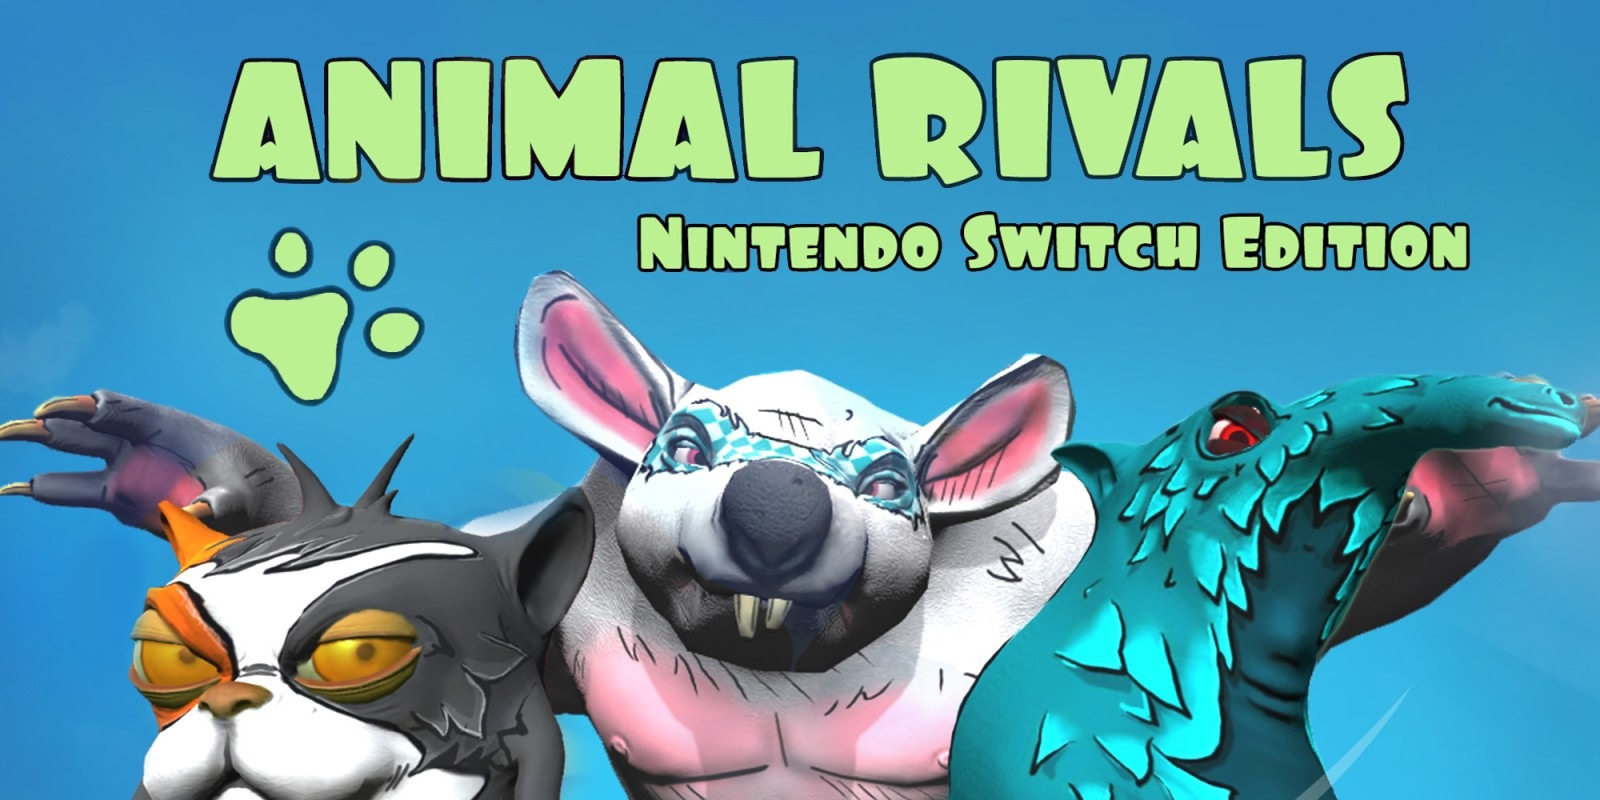 Animal Rivals: Nintendo Switch Edition